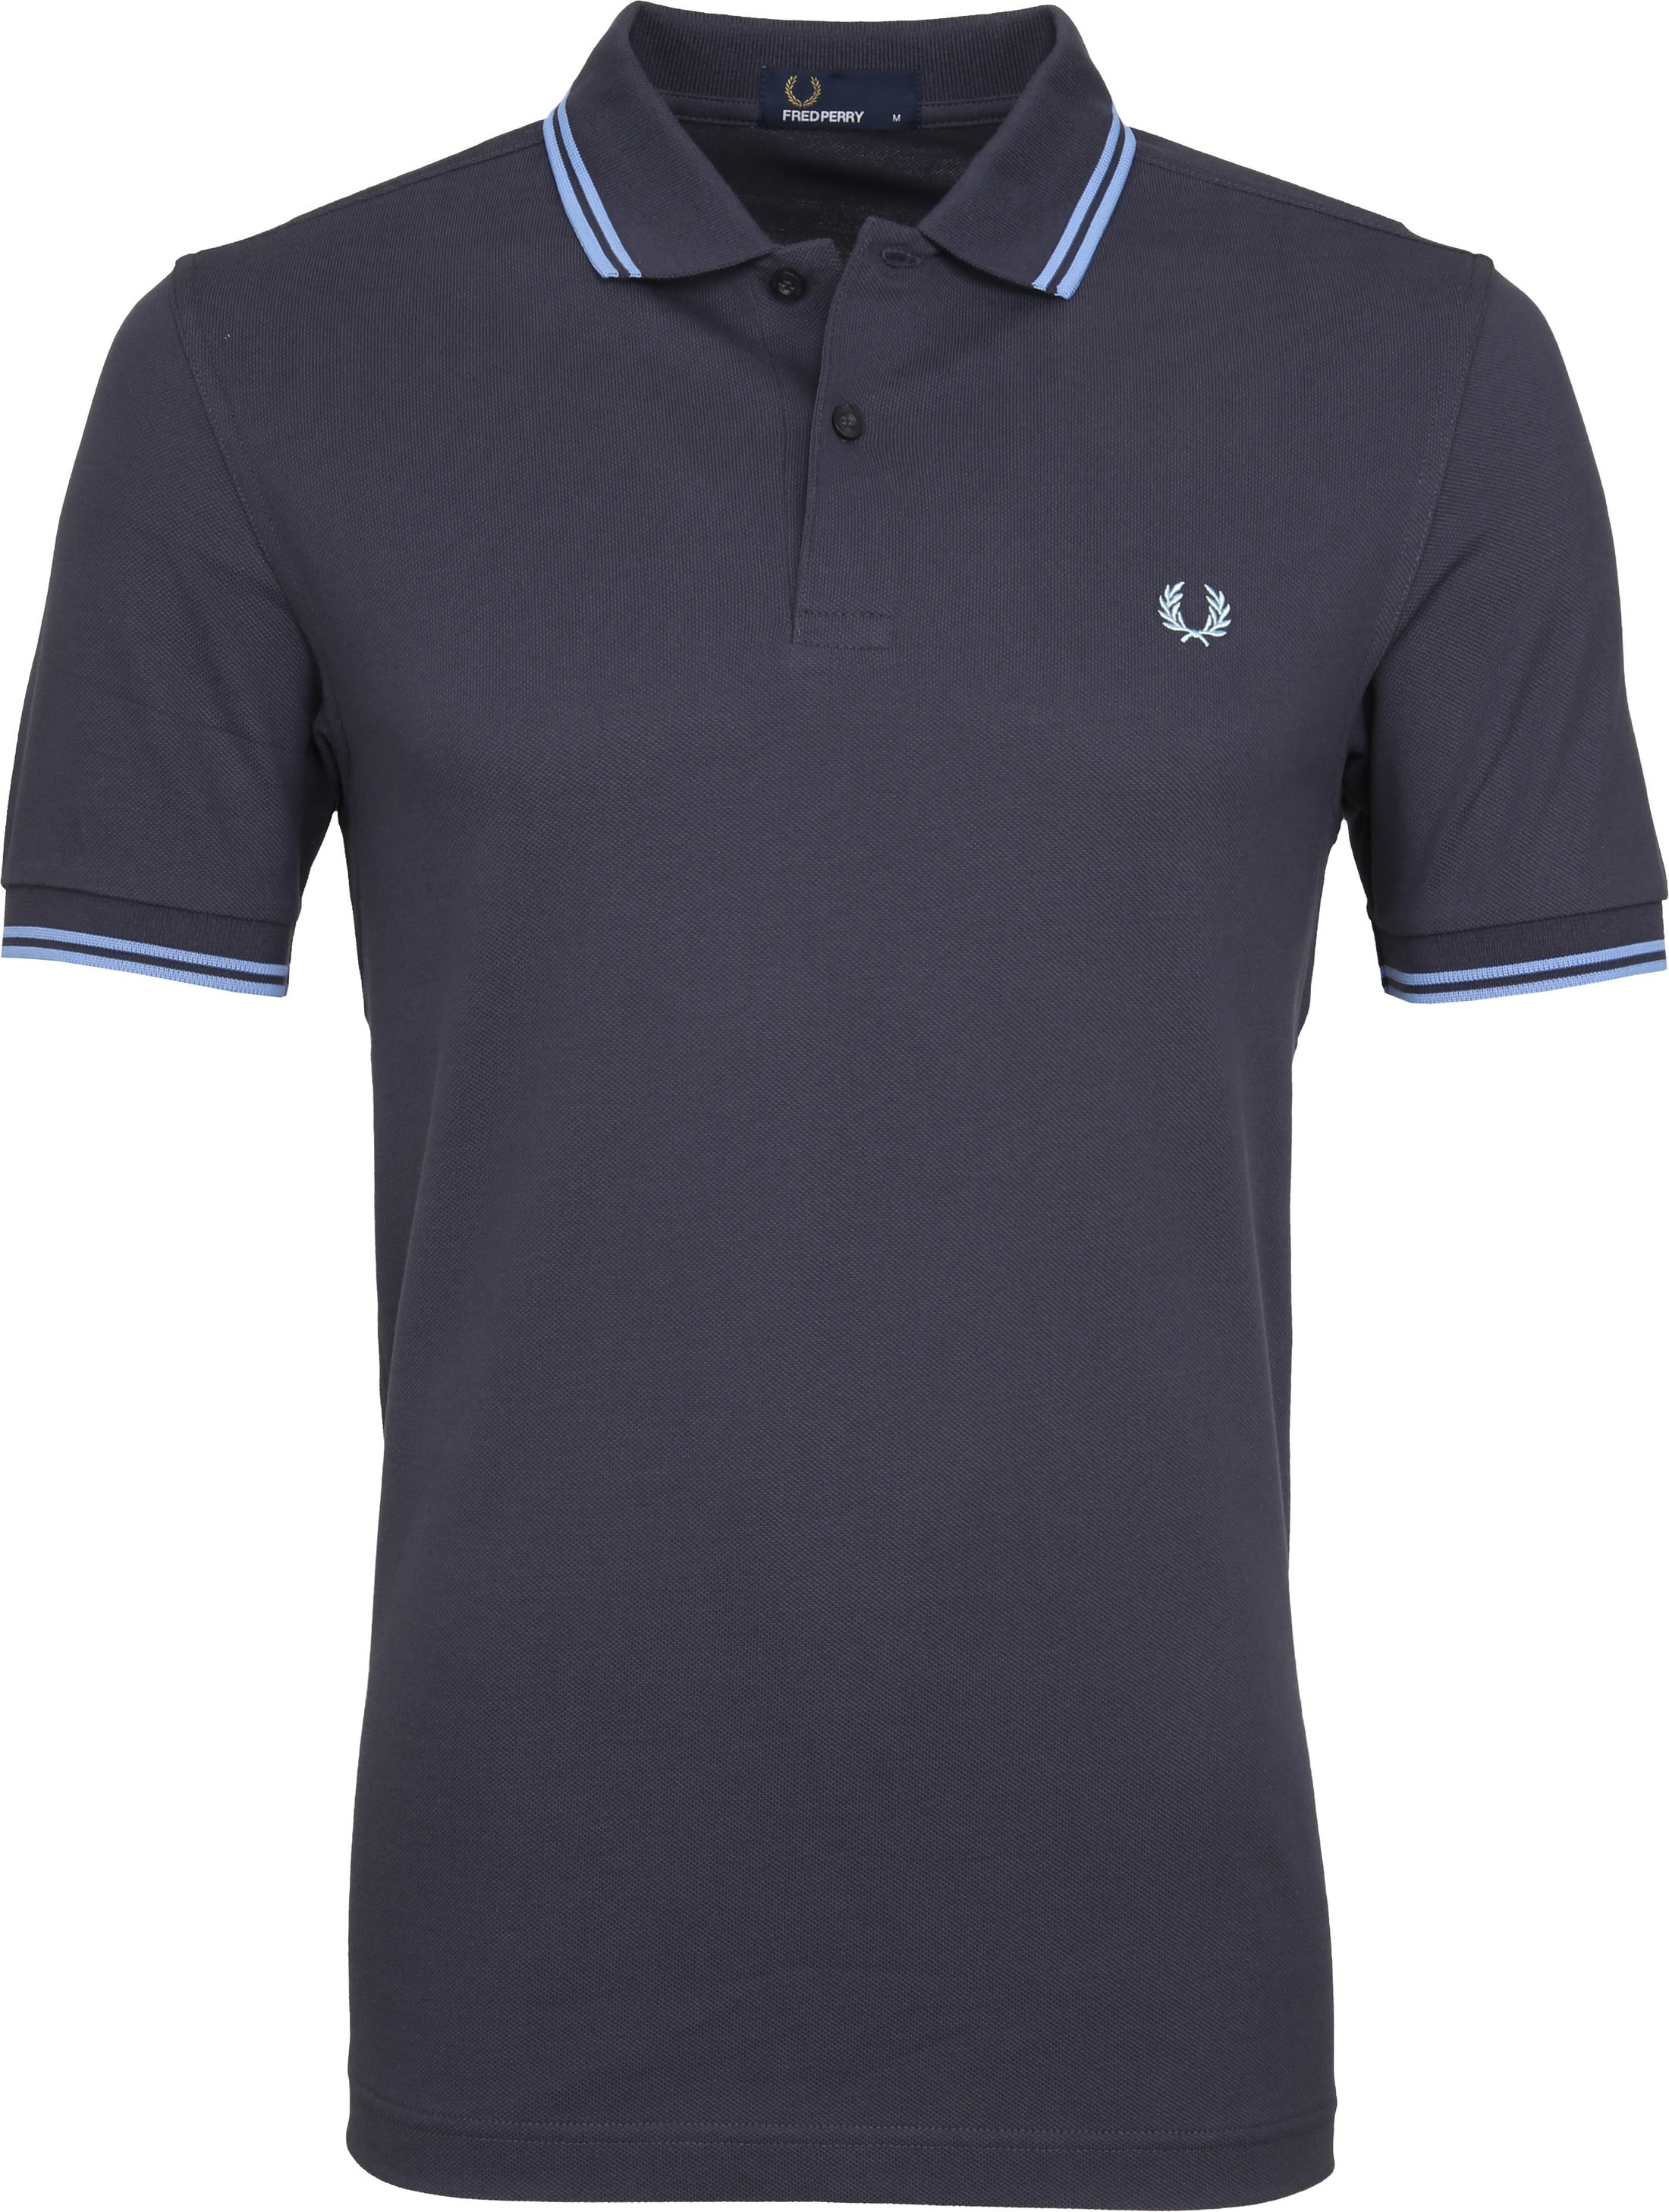 Fred Perry Poloshirt Dark Grey Blue C12 foto 0